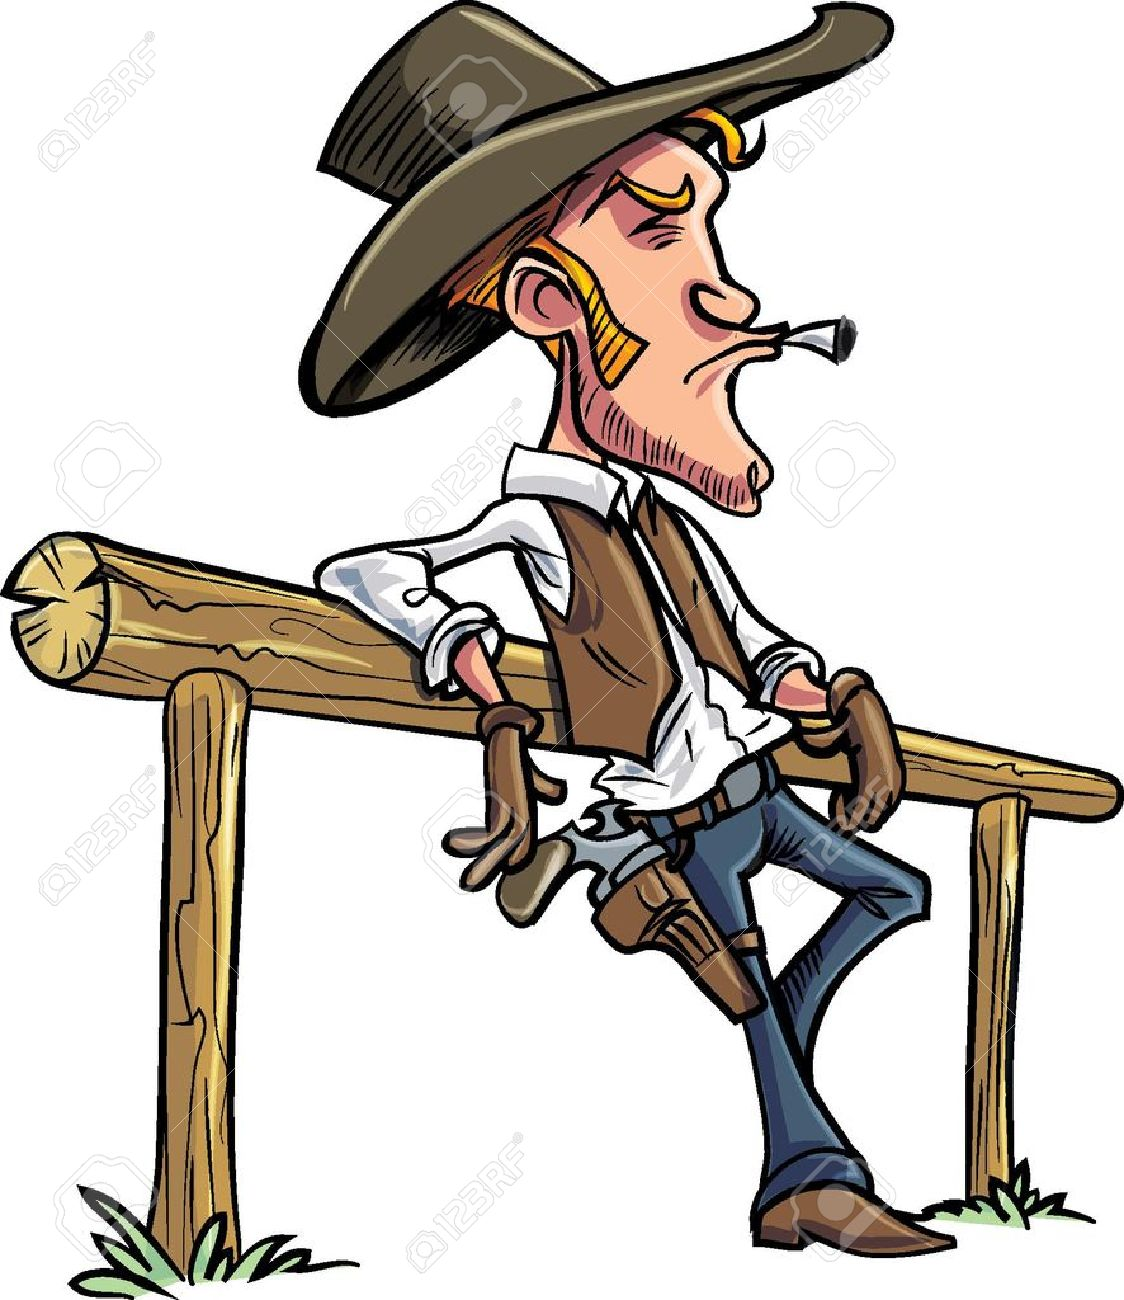 cartoon cowboy leaning on a fence smoking a cigarette royalty free